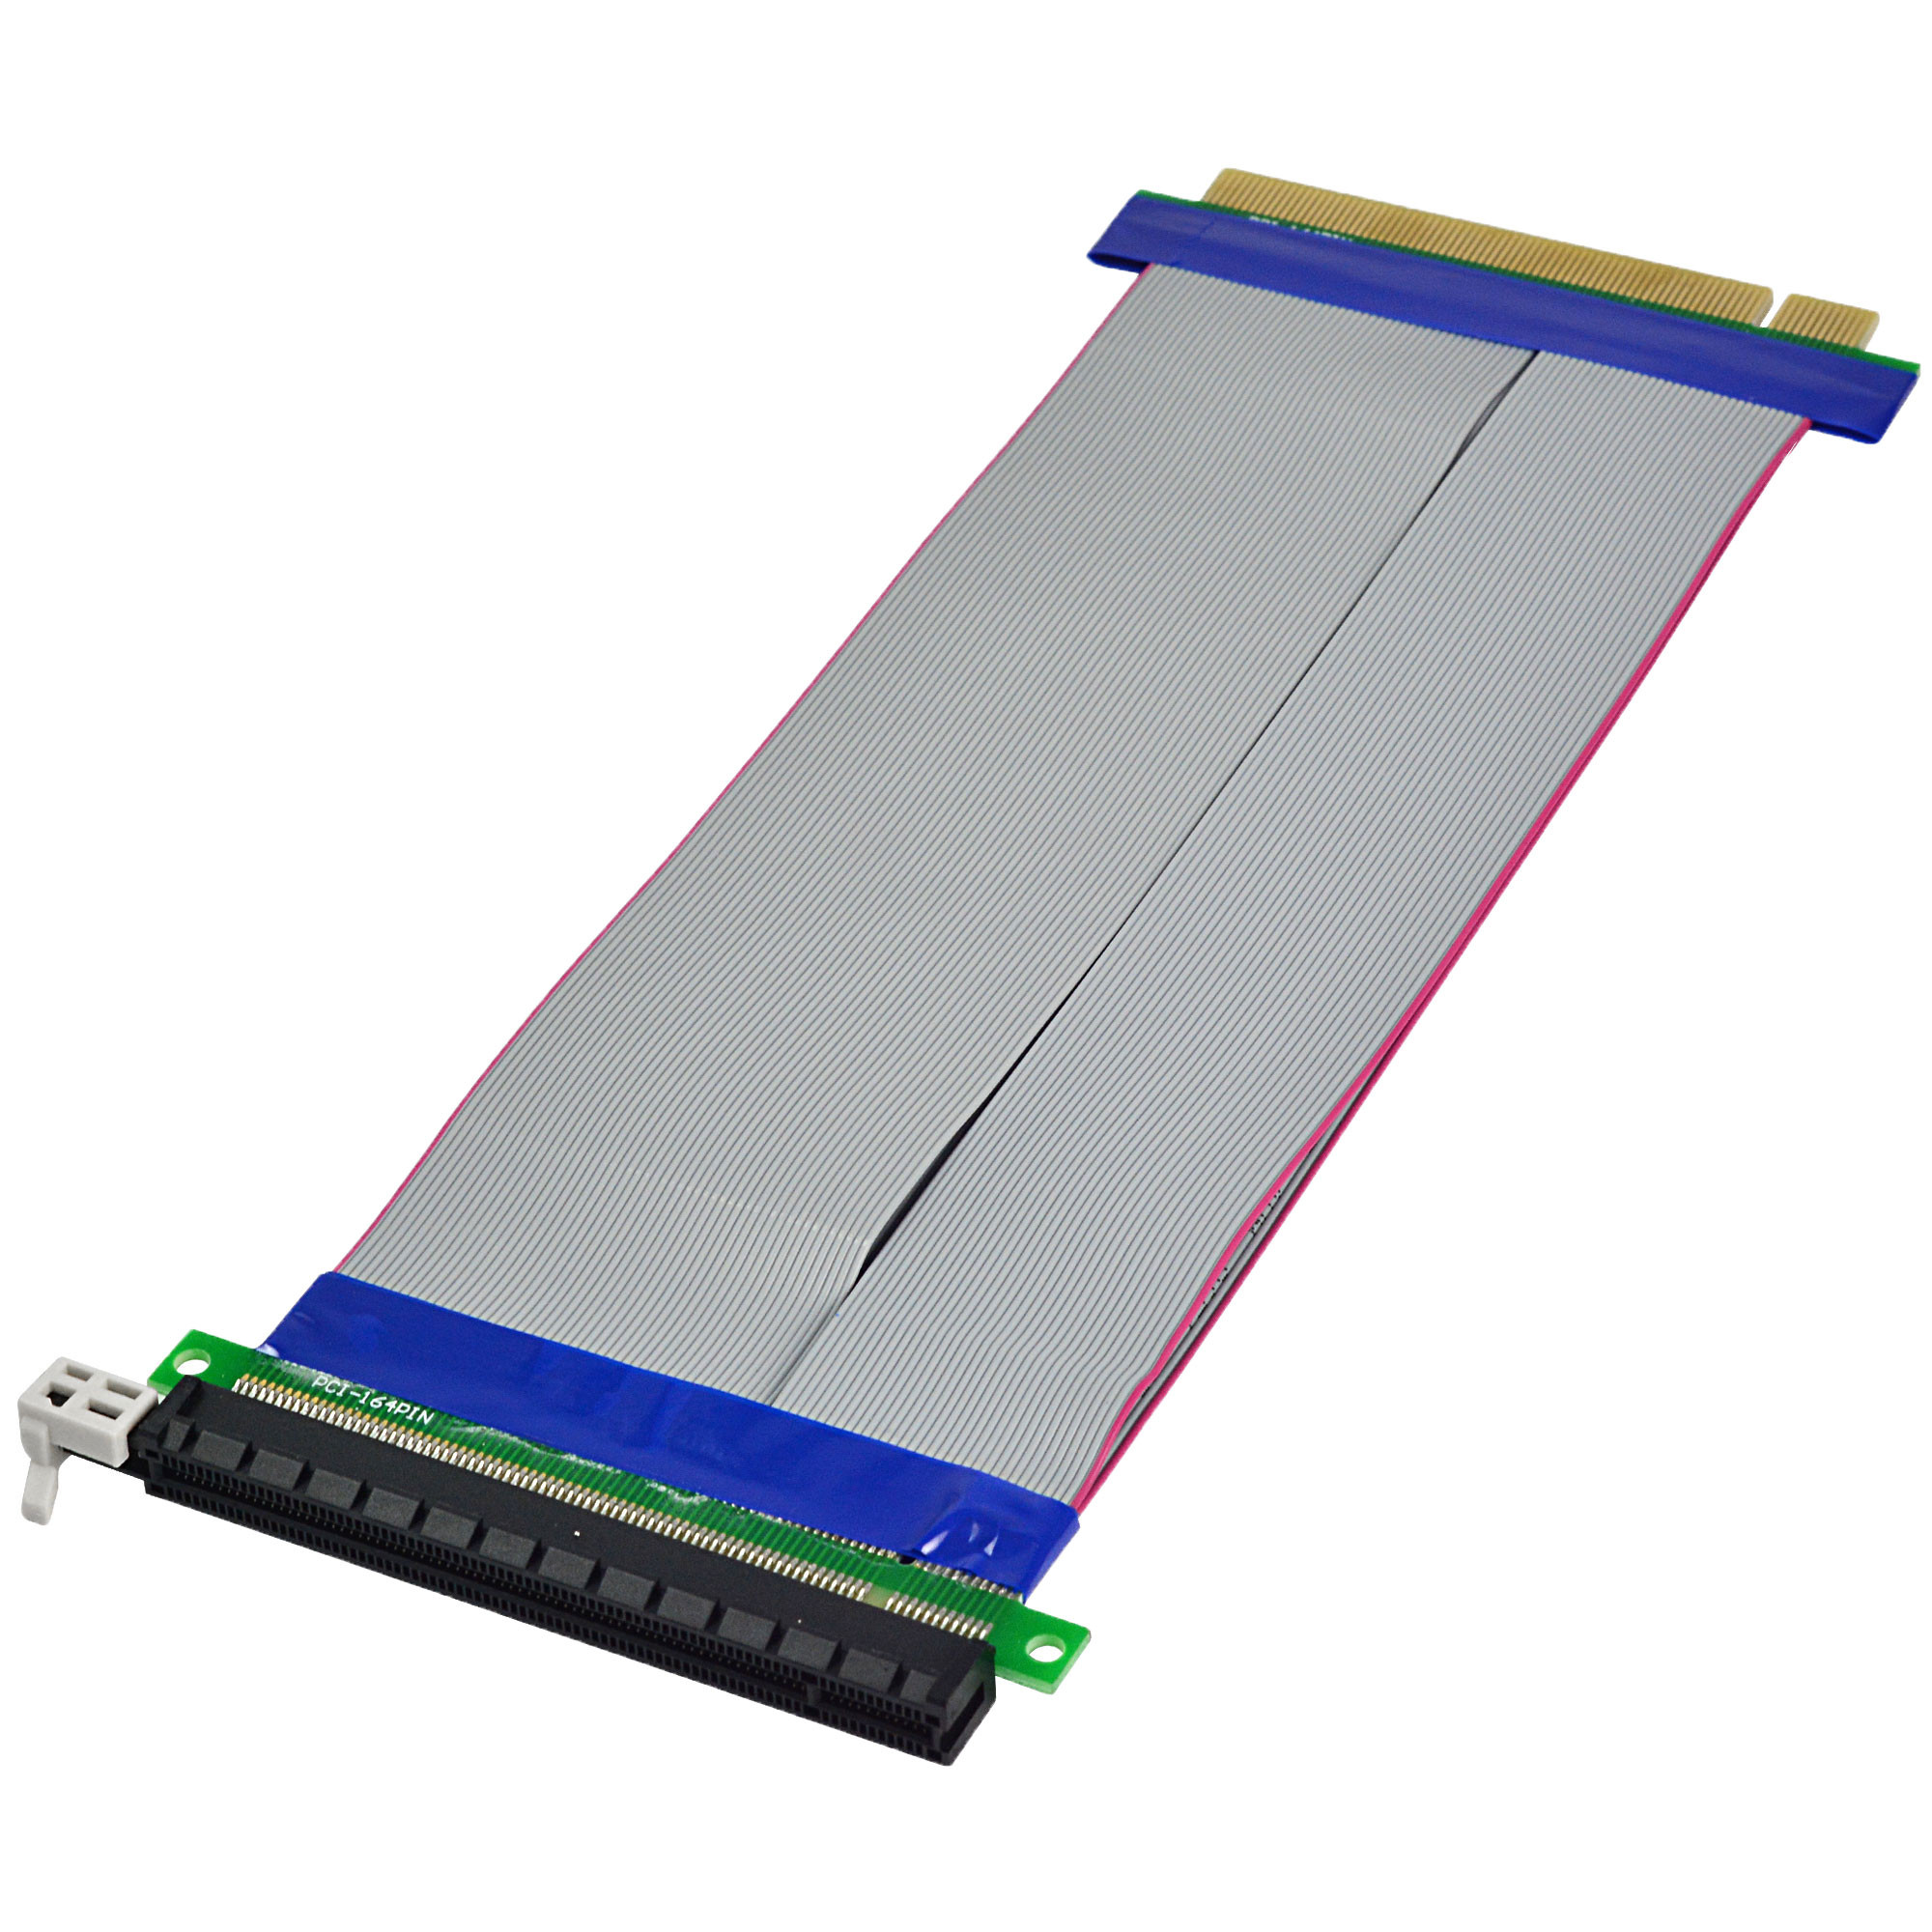 MENGS® PCI-E Express 16x Riser Card Extension Powered Cable - 190mm